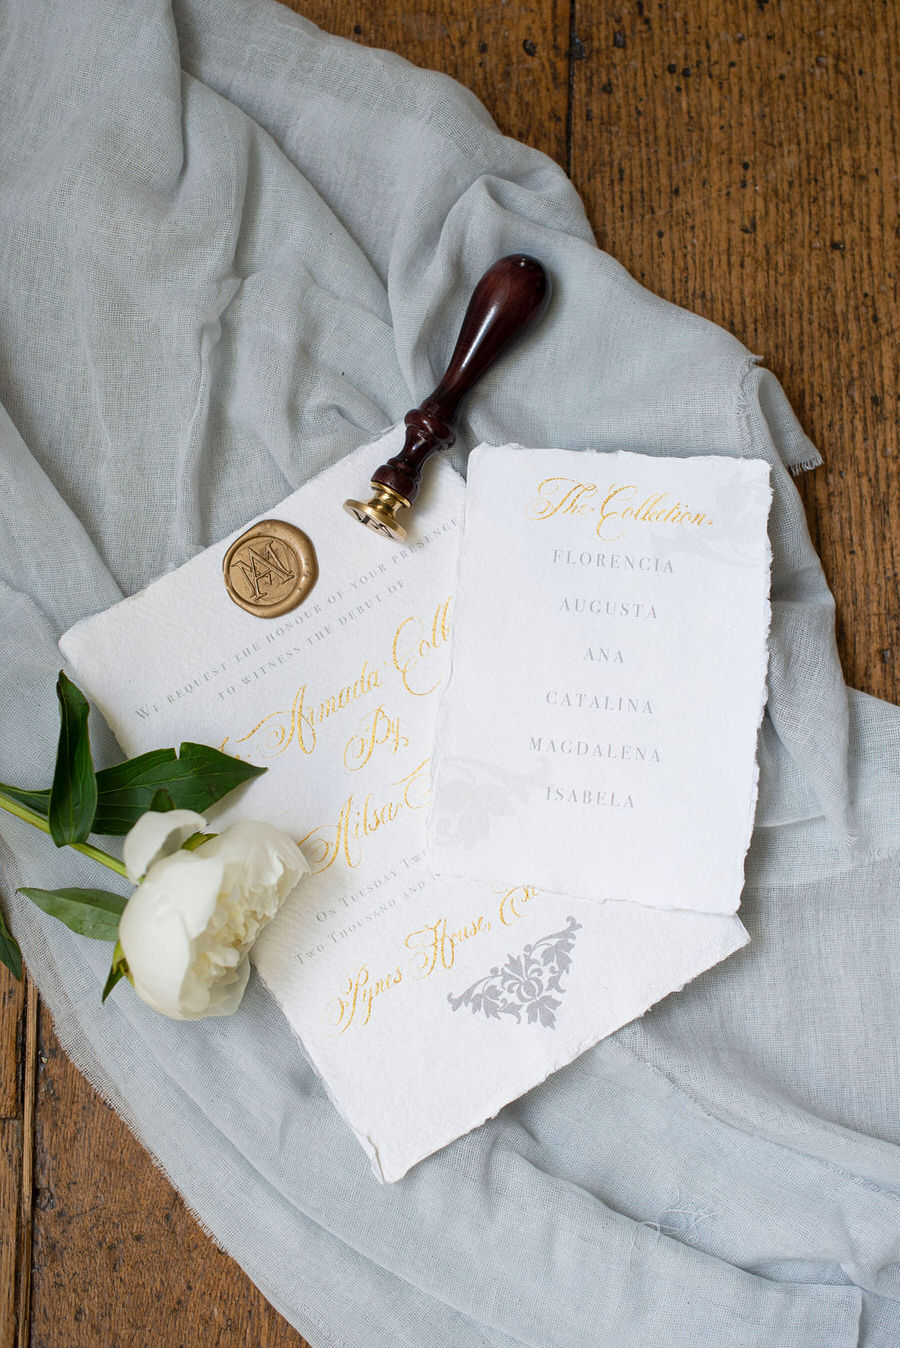 Pynes House wedding styling ideas with Ailsa Munro, Sarah Shuttle and Lottie Ettling PHotography (5)